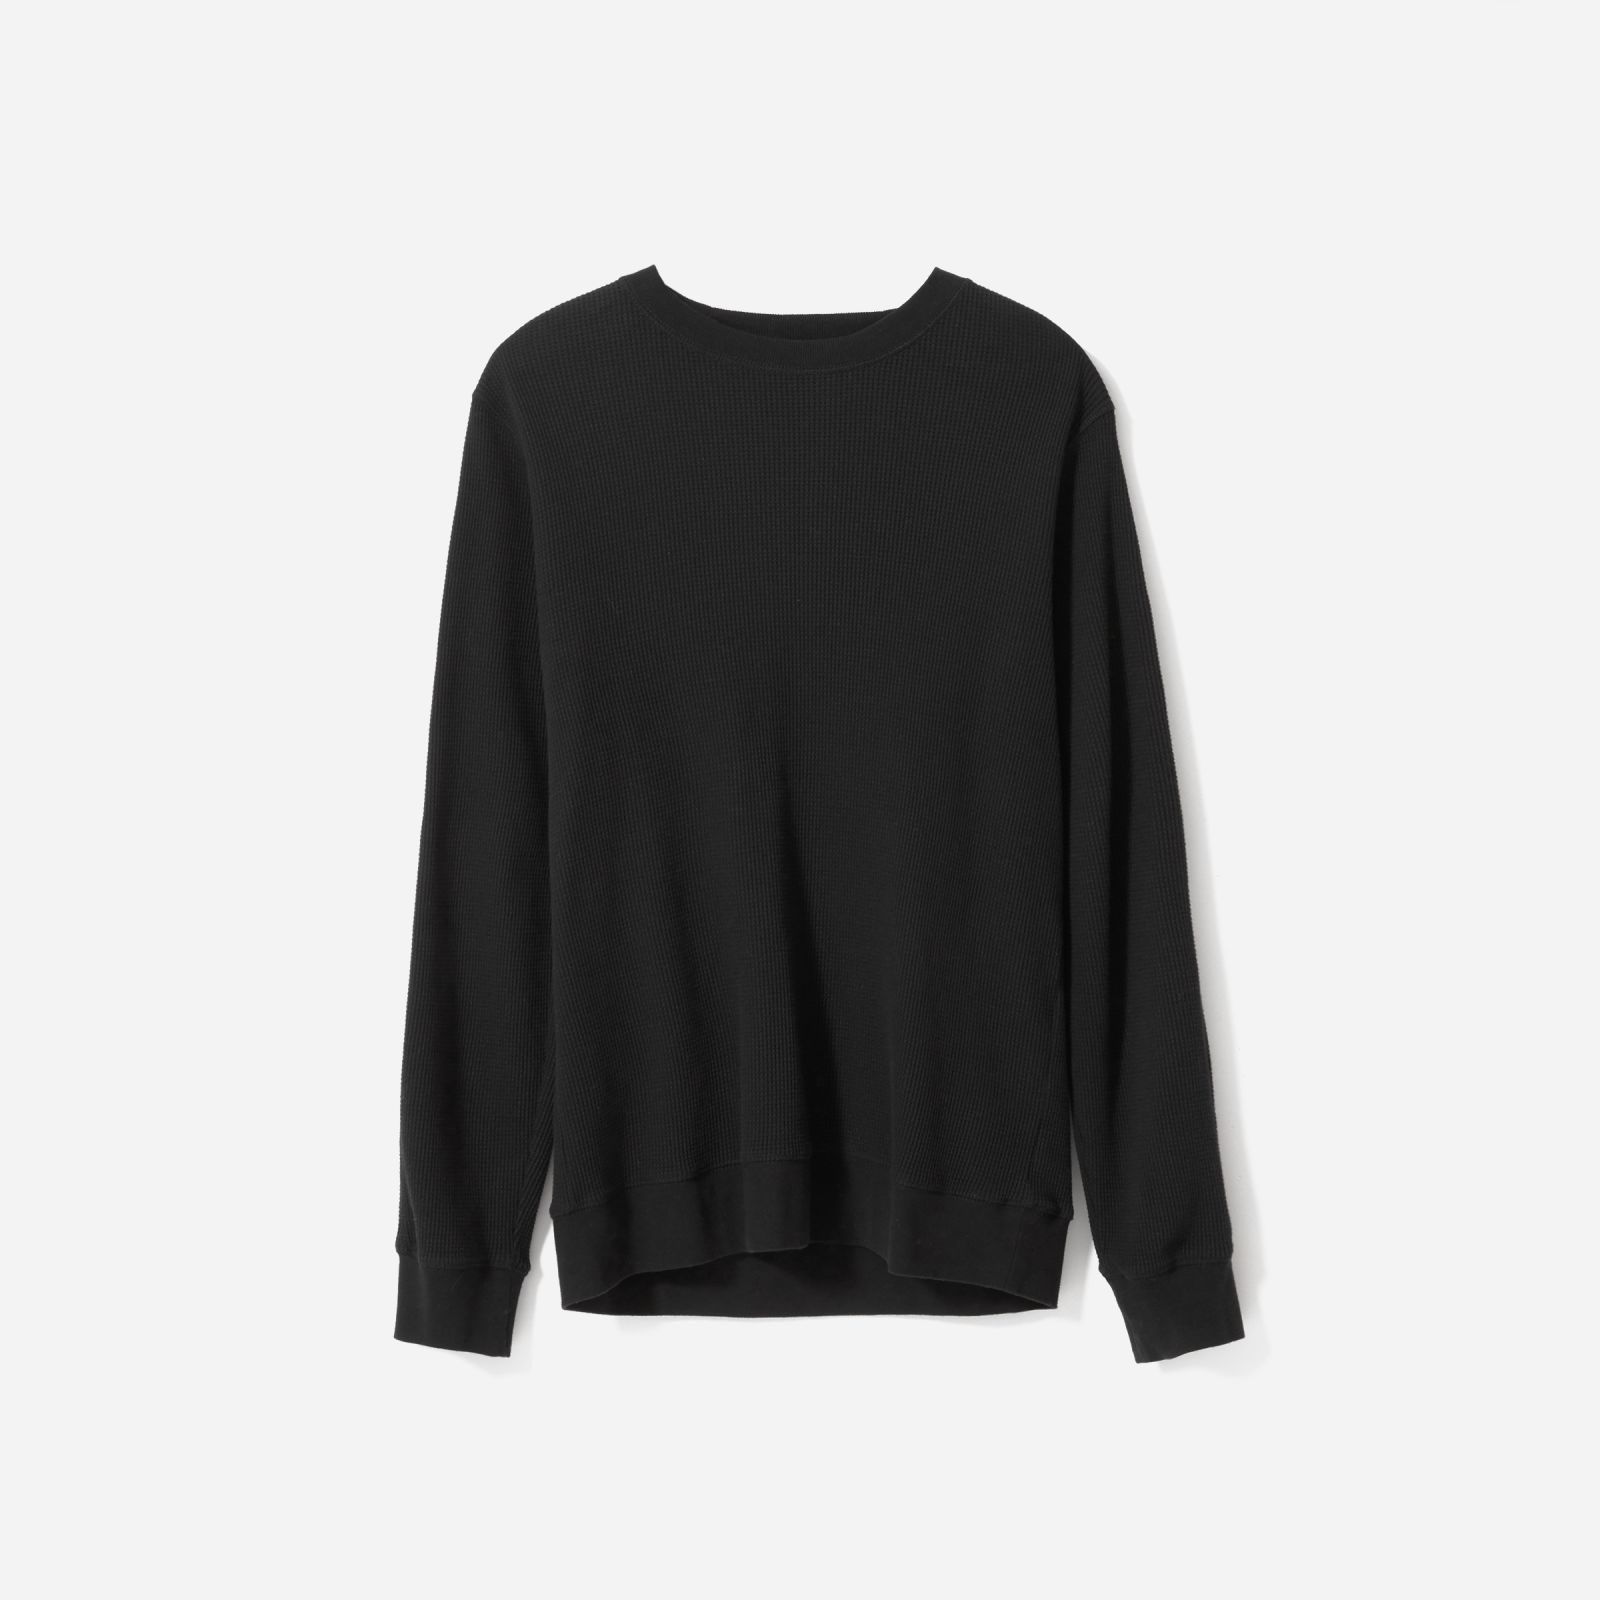 099cb792fa1 Men's Waffle-Knit Crew Sweater by Everlane in Black | Products in ...